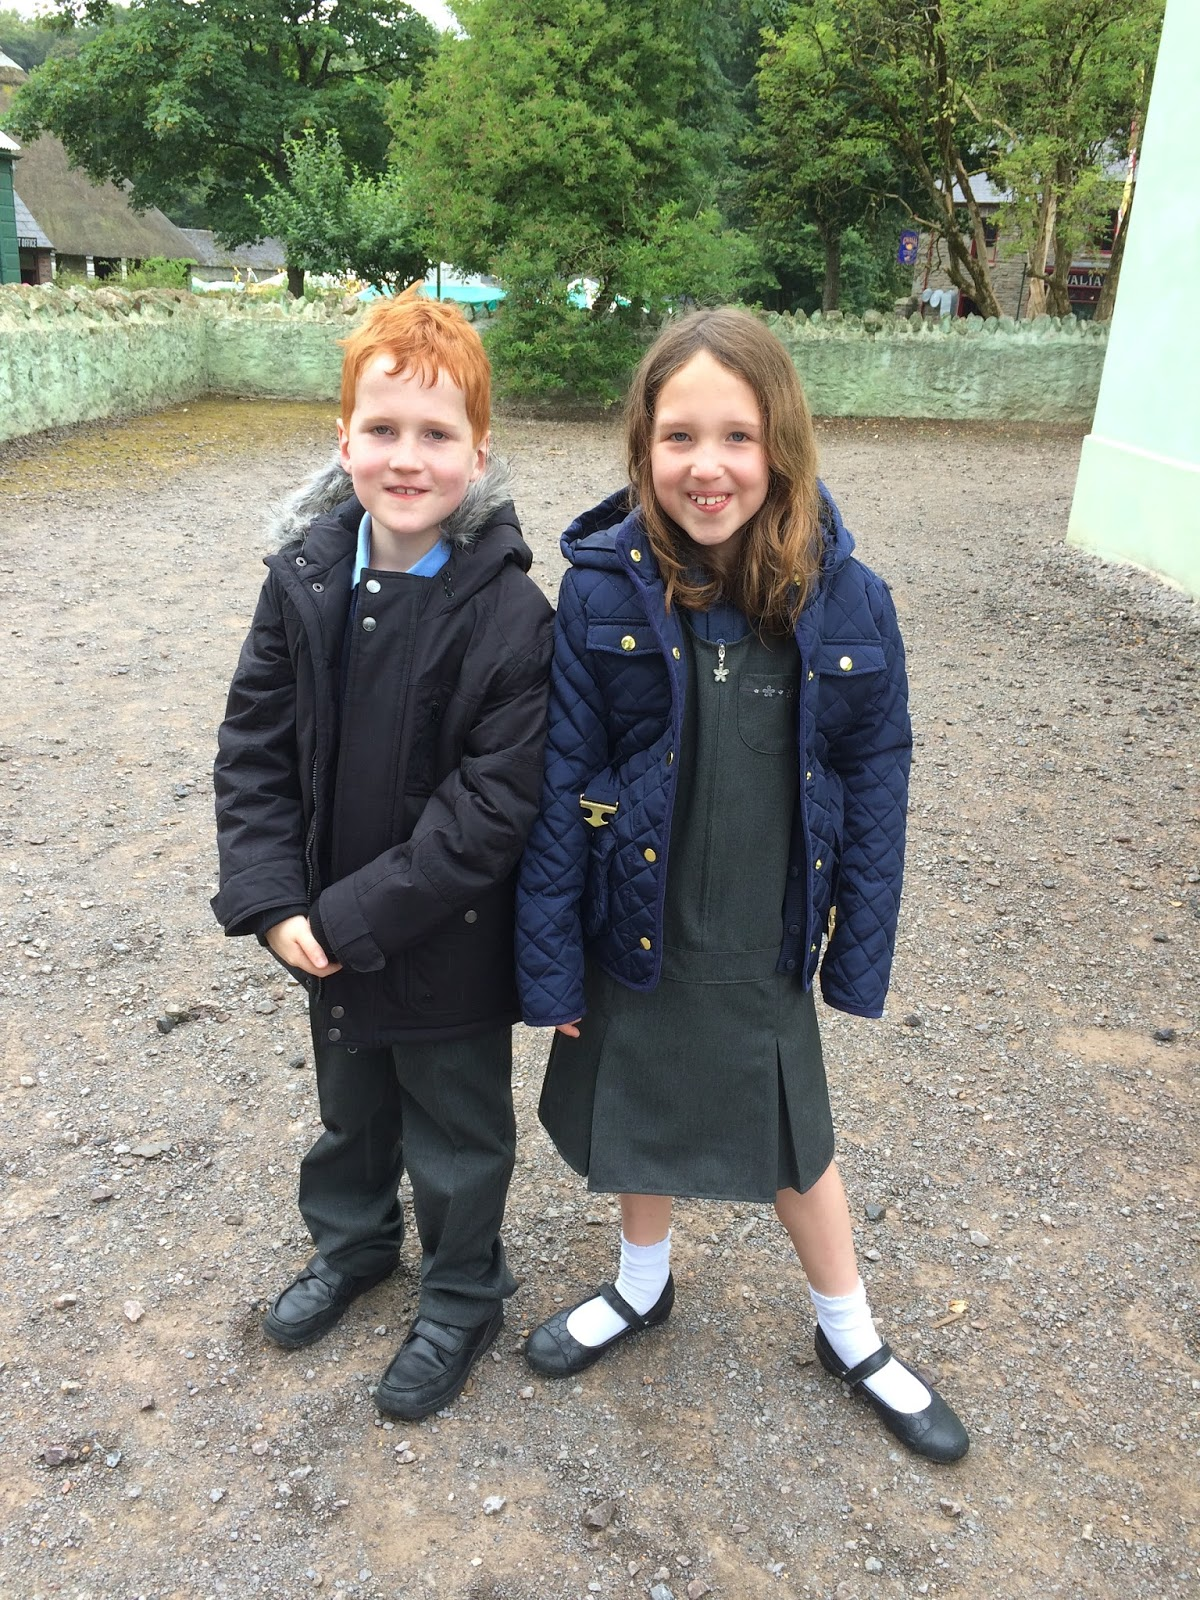 Caitlin and Ieuan at St. Fagans, Cardiff